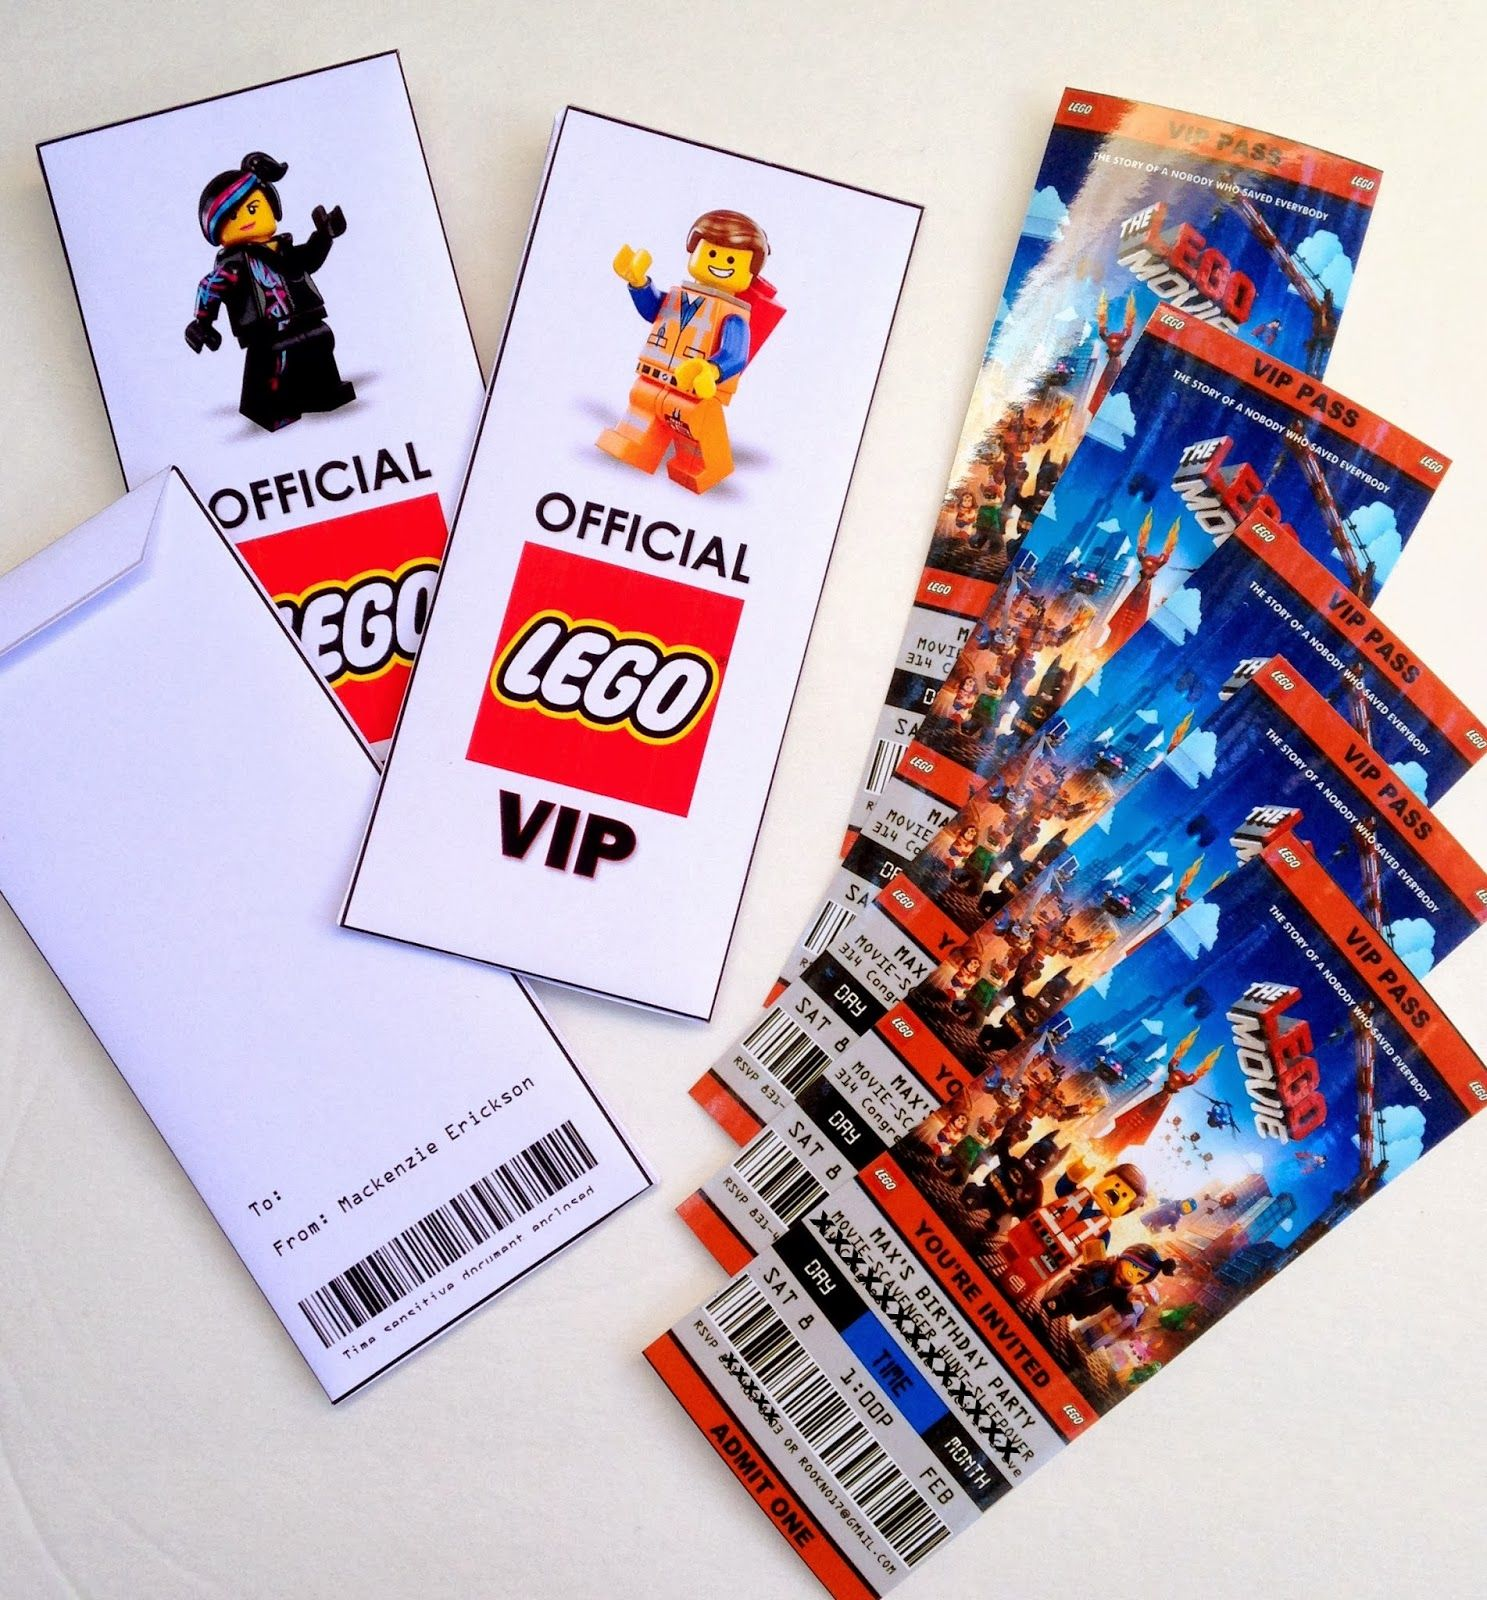 Free Printable (and Customizeable) Ticket Style Party Invitations    The  Lego Movie.  Free Printable Ticket Style Invitations